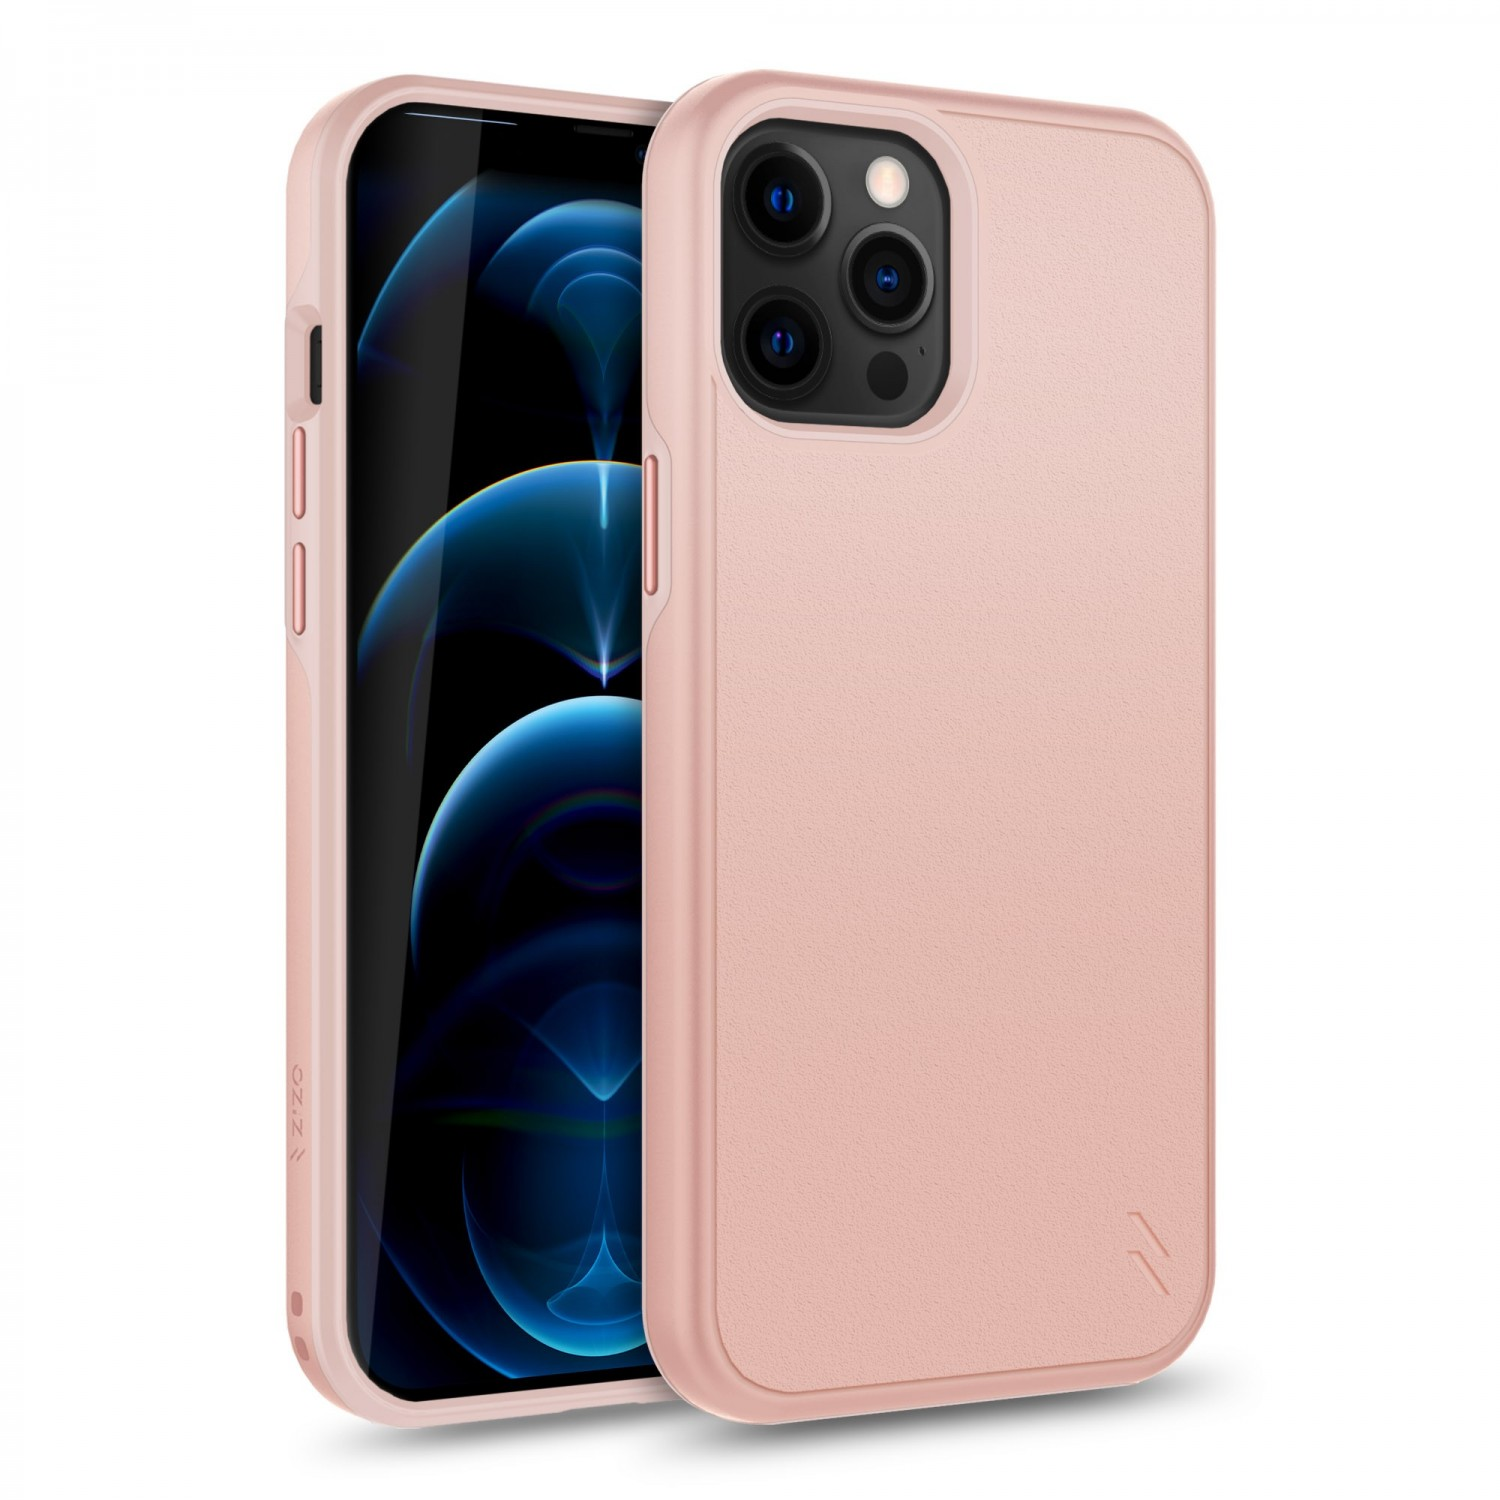 Case - Zizo® Division Case for iPhone 12 PRO MAX Rose Gold